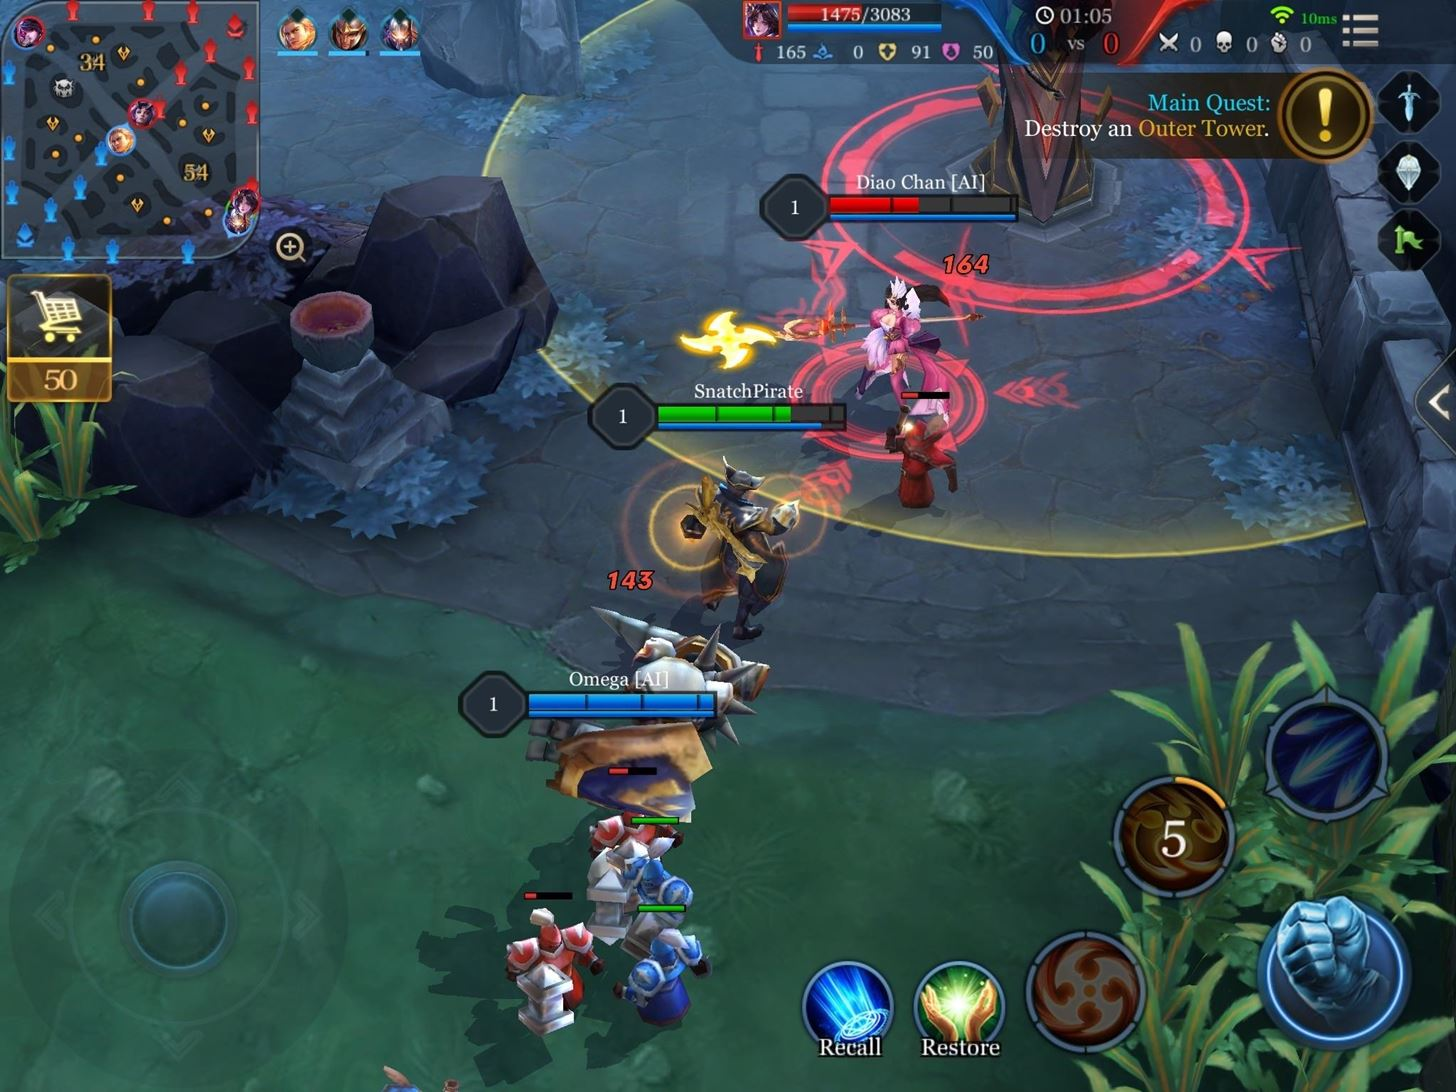 Play Tencent's 'Strike of Kings' on Your iPhone Now Before It Makes Its Way Stateside